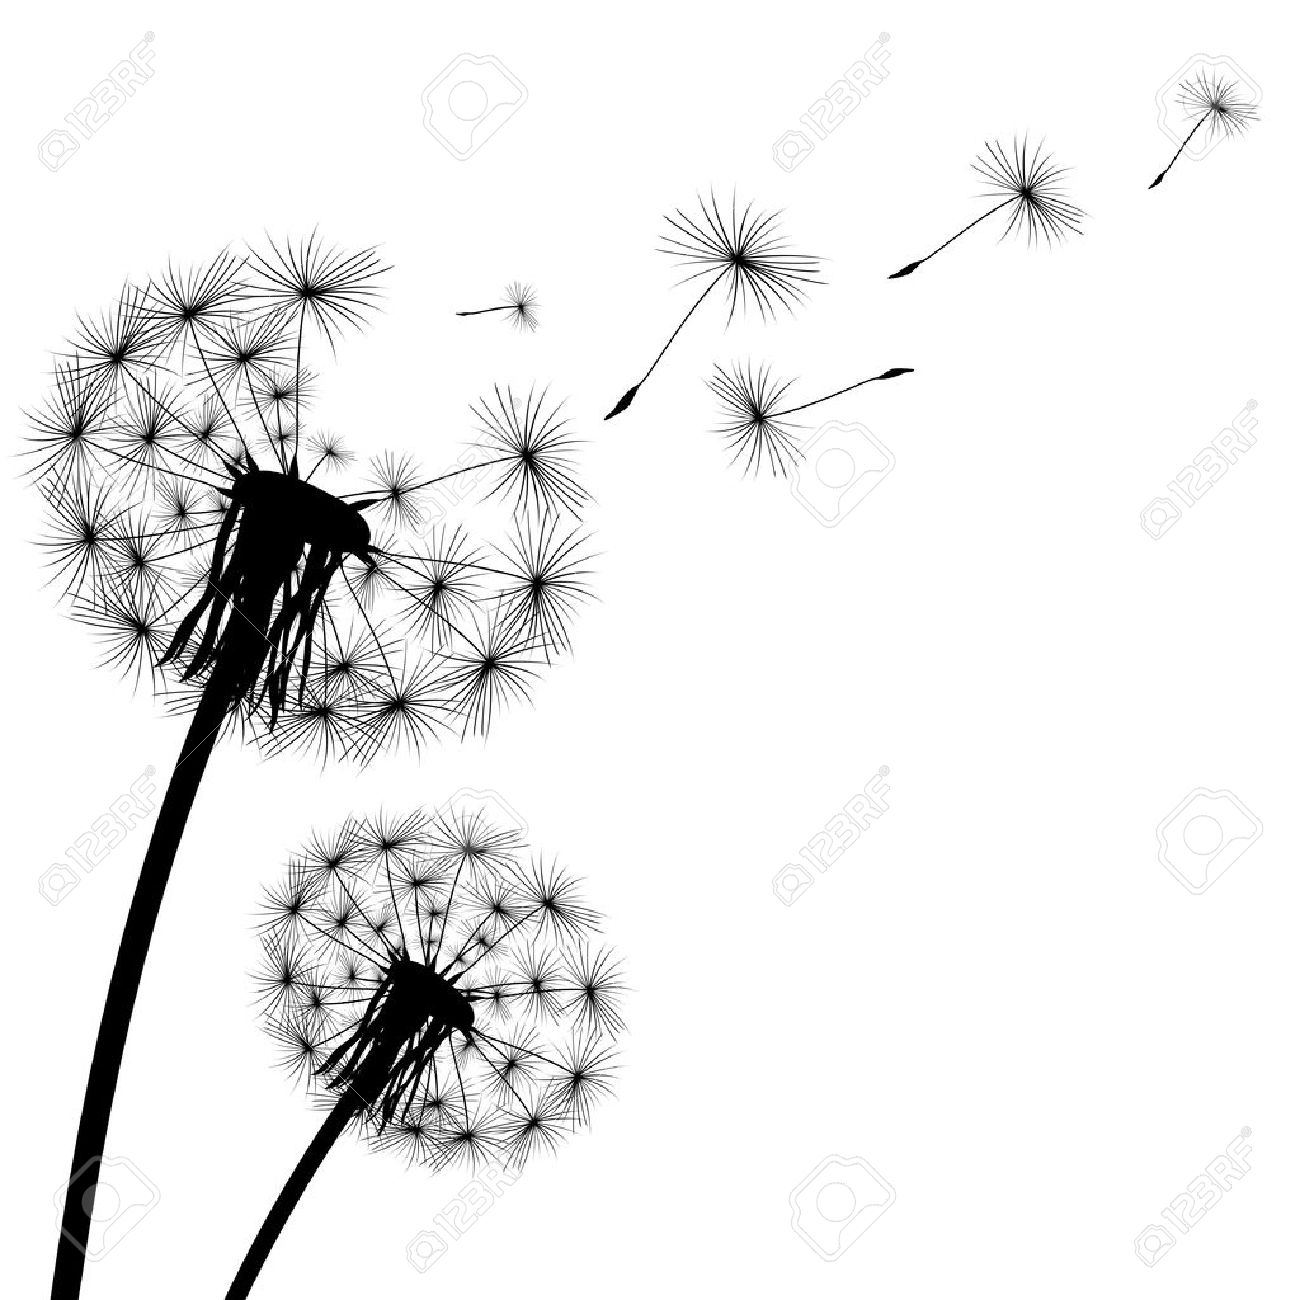 black silhouette with flying dandelion buds on a white background.